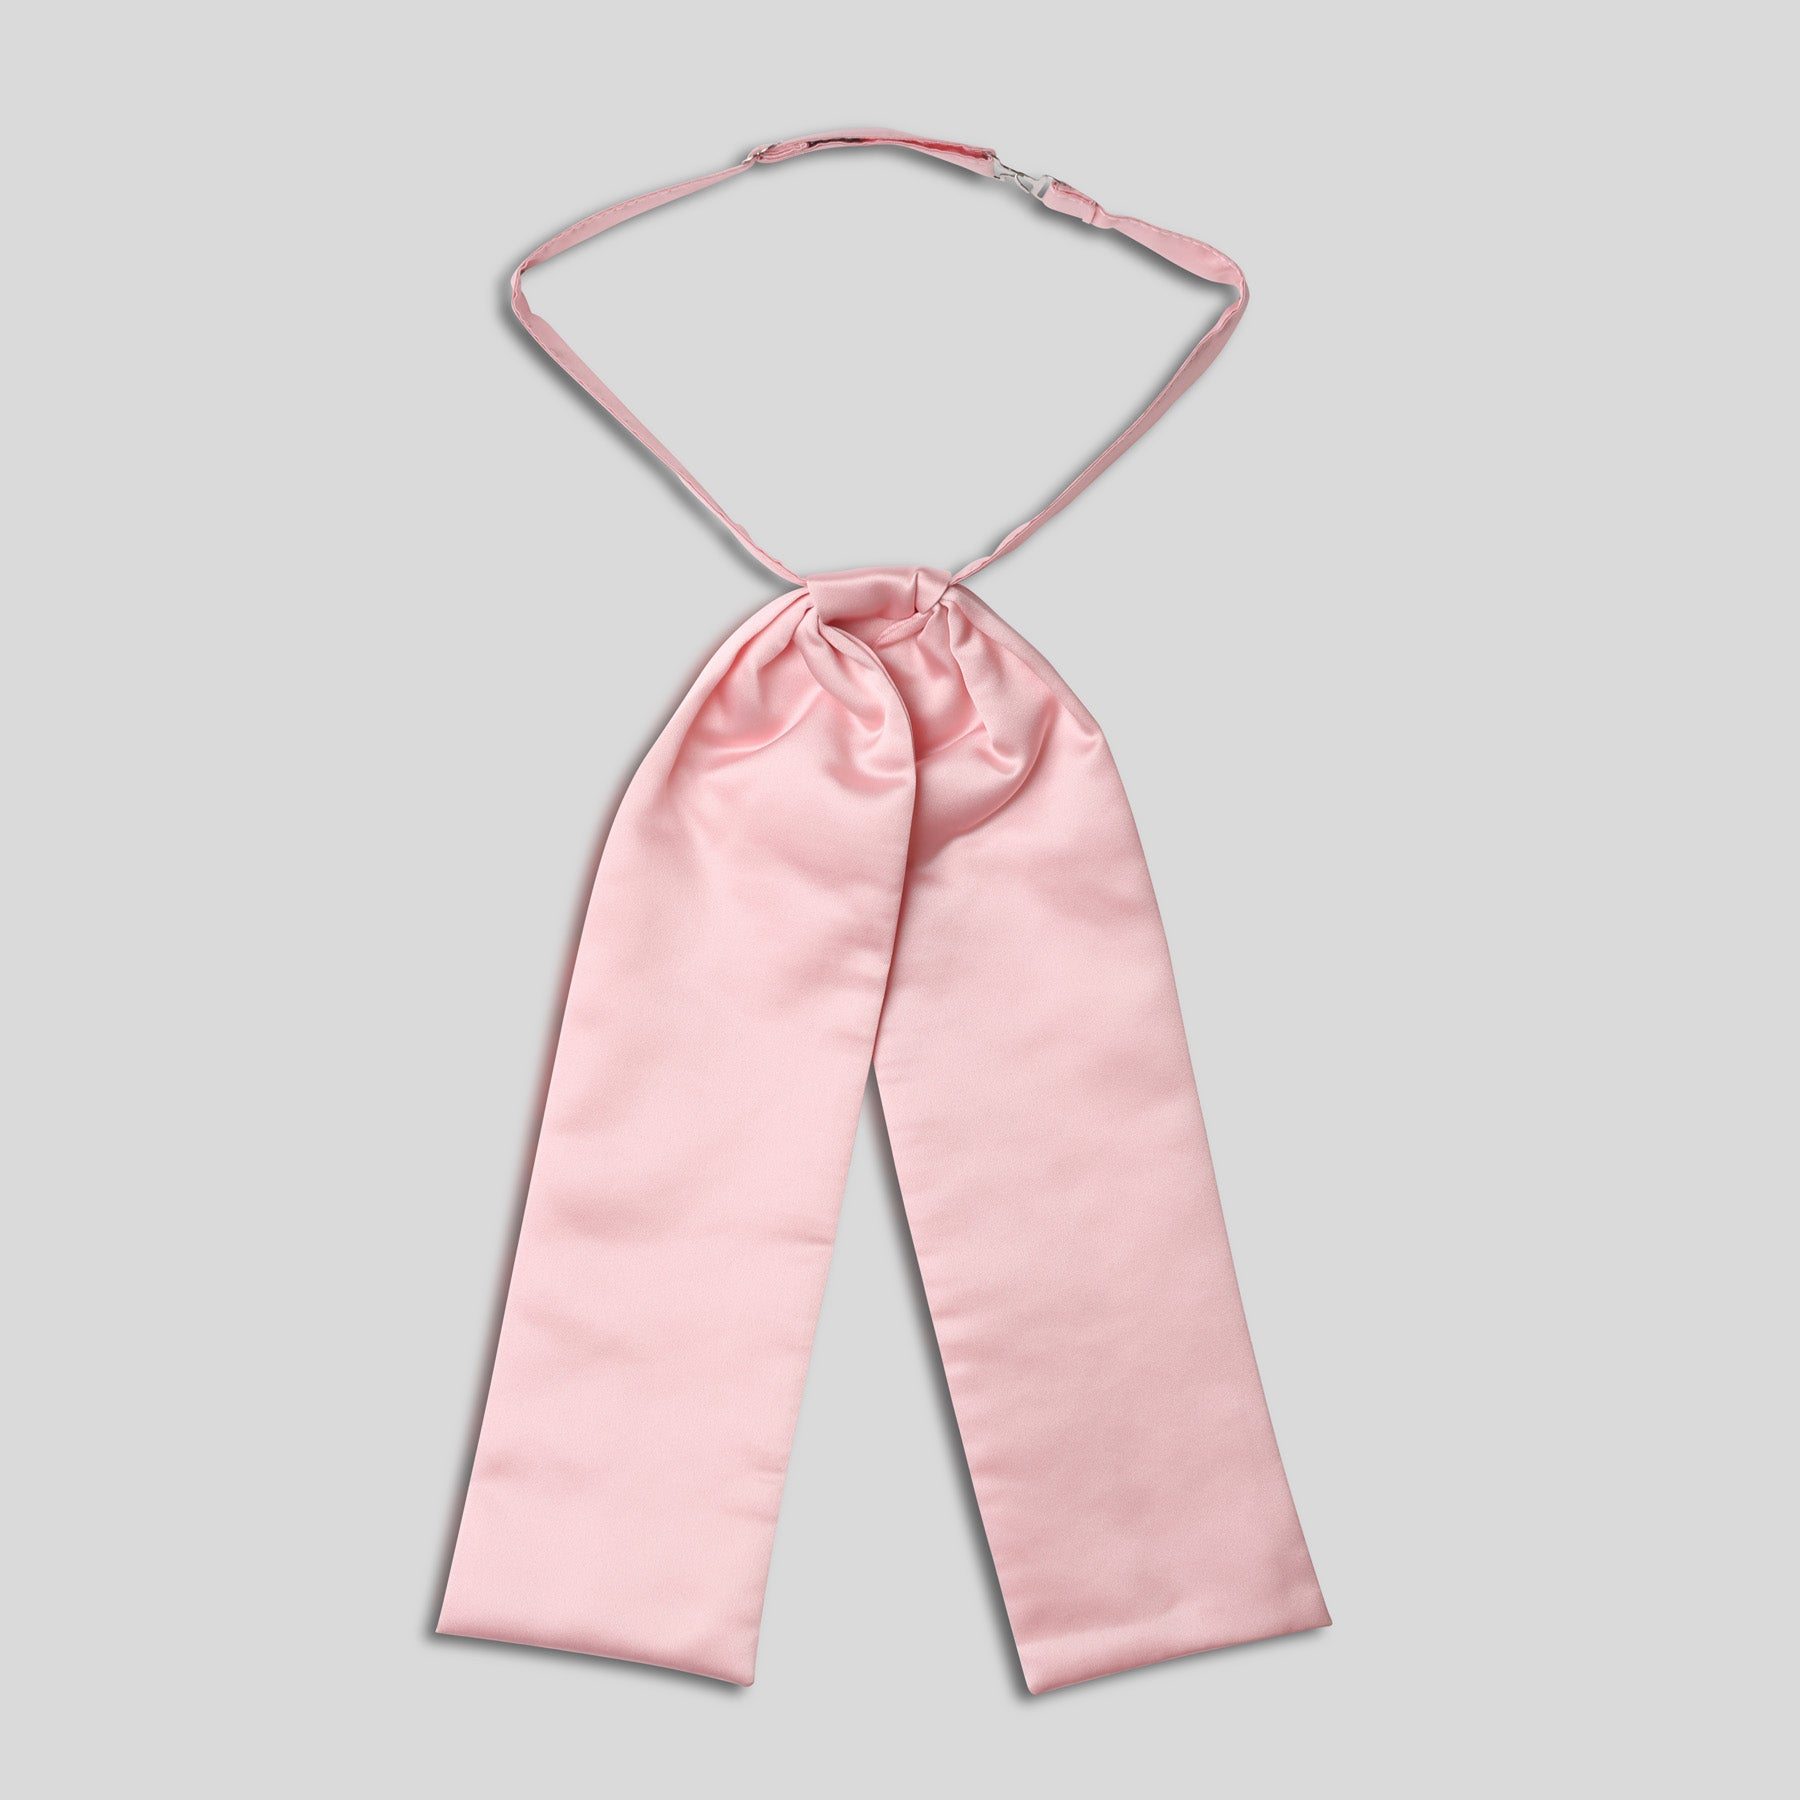 Folkespeare Pink Satin Wedding Cravat With A Pearl Pin